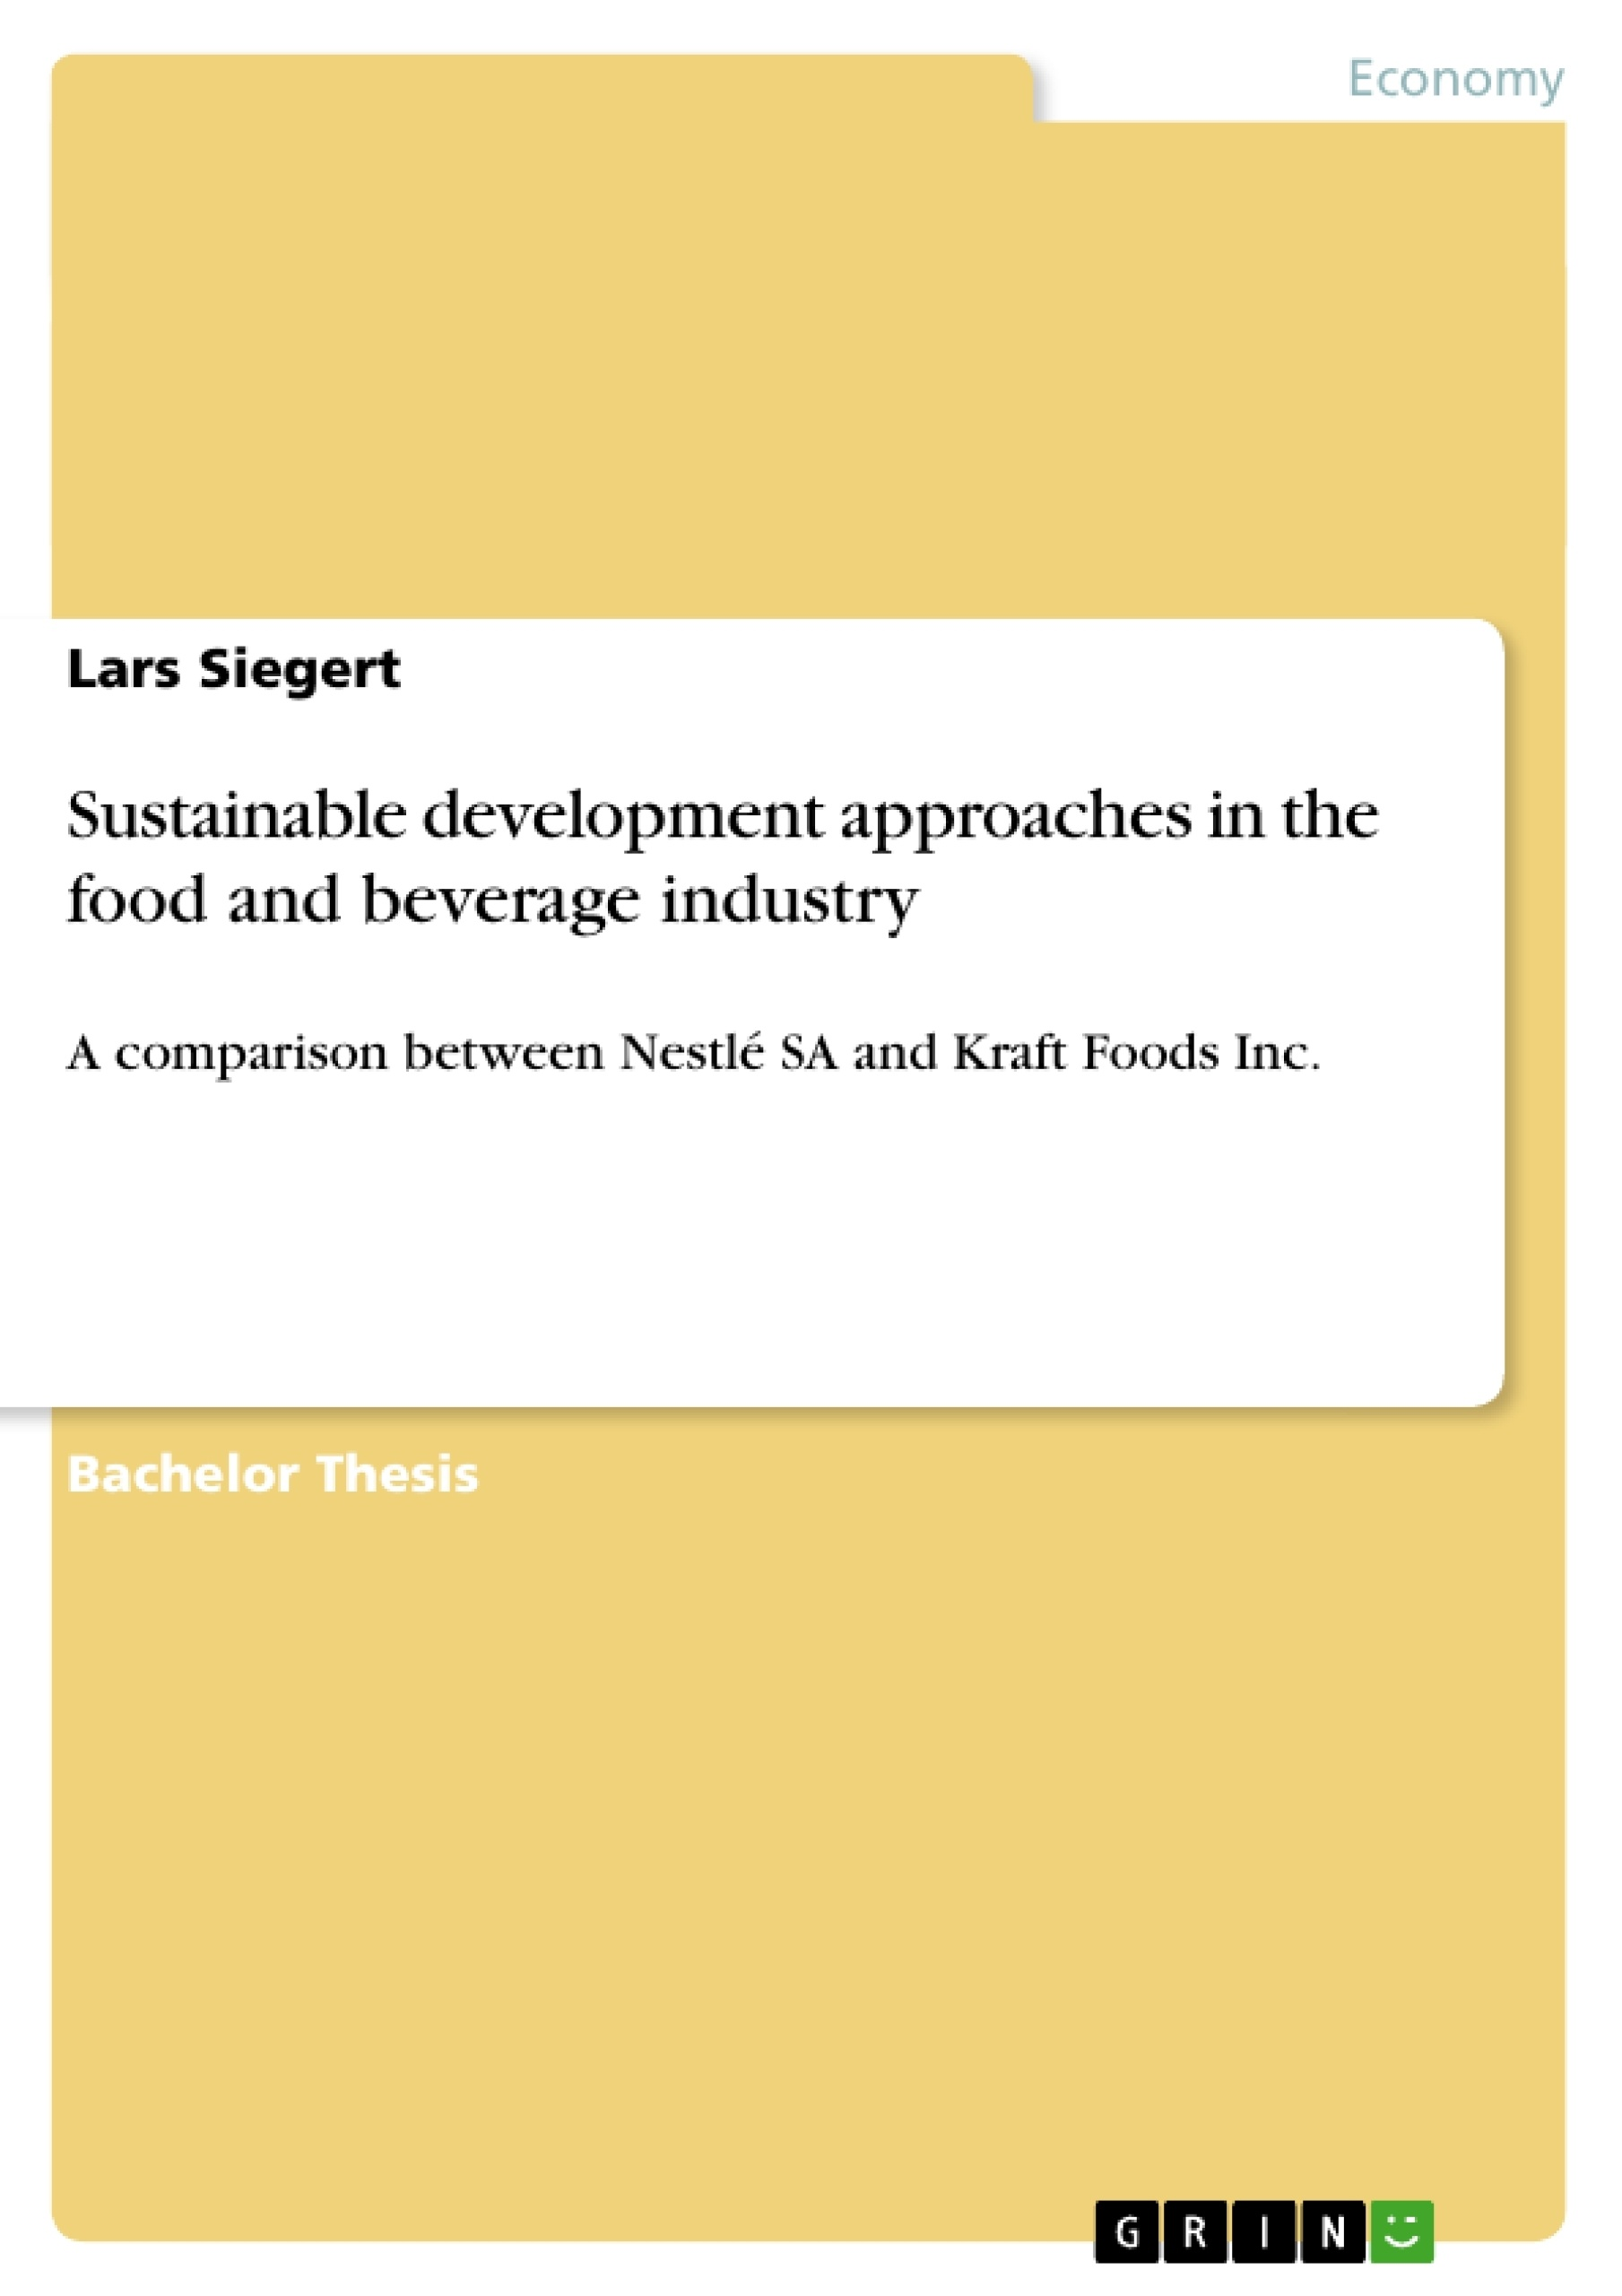 Title: Sustainable development approaches in the food and beverage industry